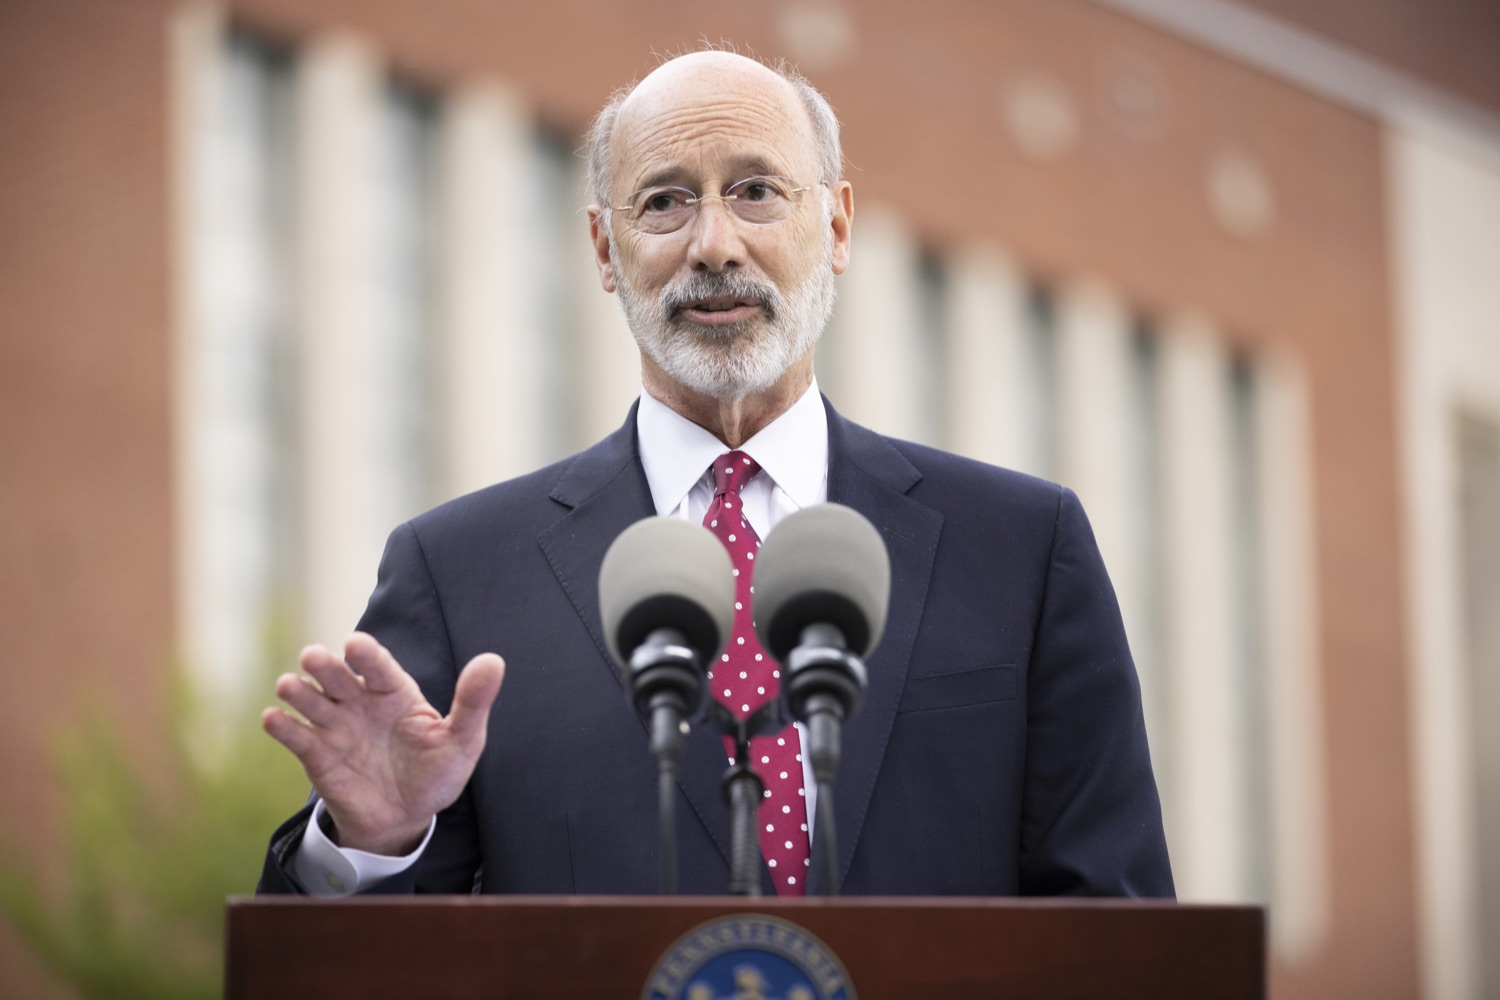 """<a href=""""https://filesource.wostreaming.net/commonwealthofpa/photo/18796_gov_charterSchool_dz_006.jpg"""" target=""""_blank"""">⇣Download Photo<br></a>Pennsylvania Governor Tom Wolf speaking with the press.  With overwhelming support among school districts for his charter school accountability plan, Governor Tom Wolf visited J.P. McCaskey High School in Lancaster today to discuss his bipartisan proposal that saves an estimated $395 million a year. Lancaster, PA  June 01, 2021"""